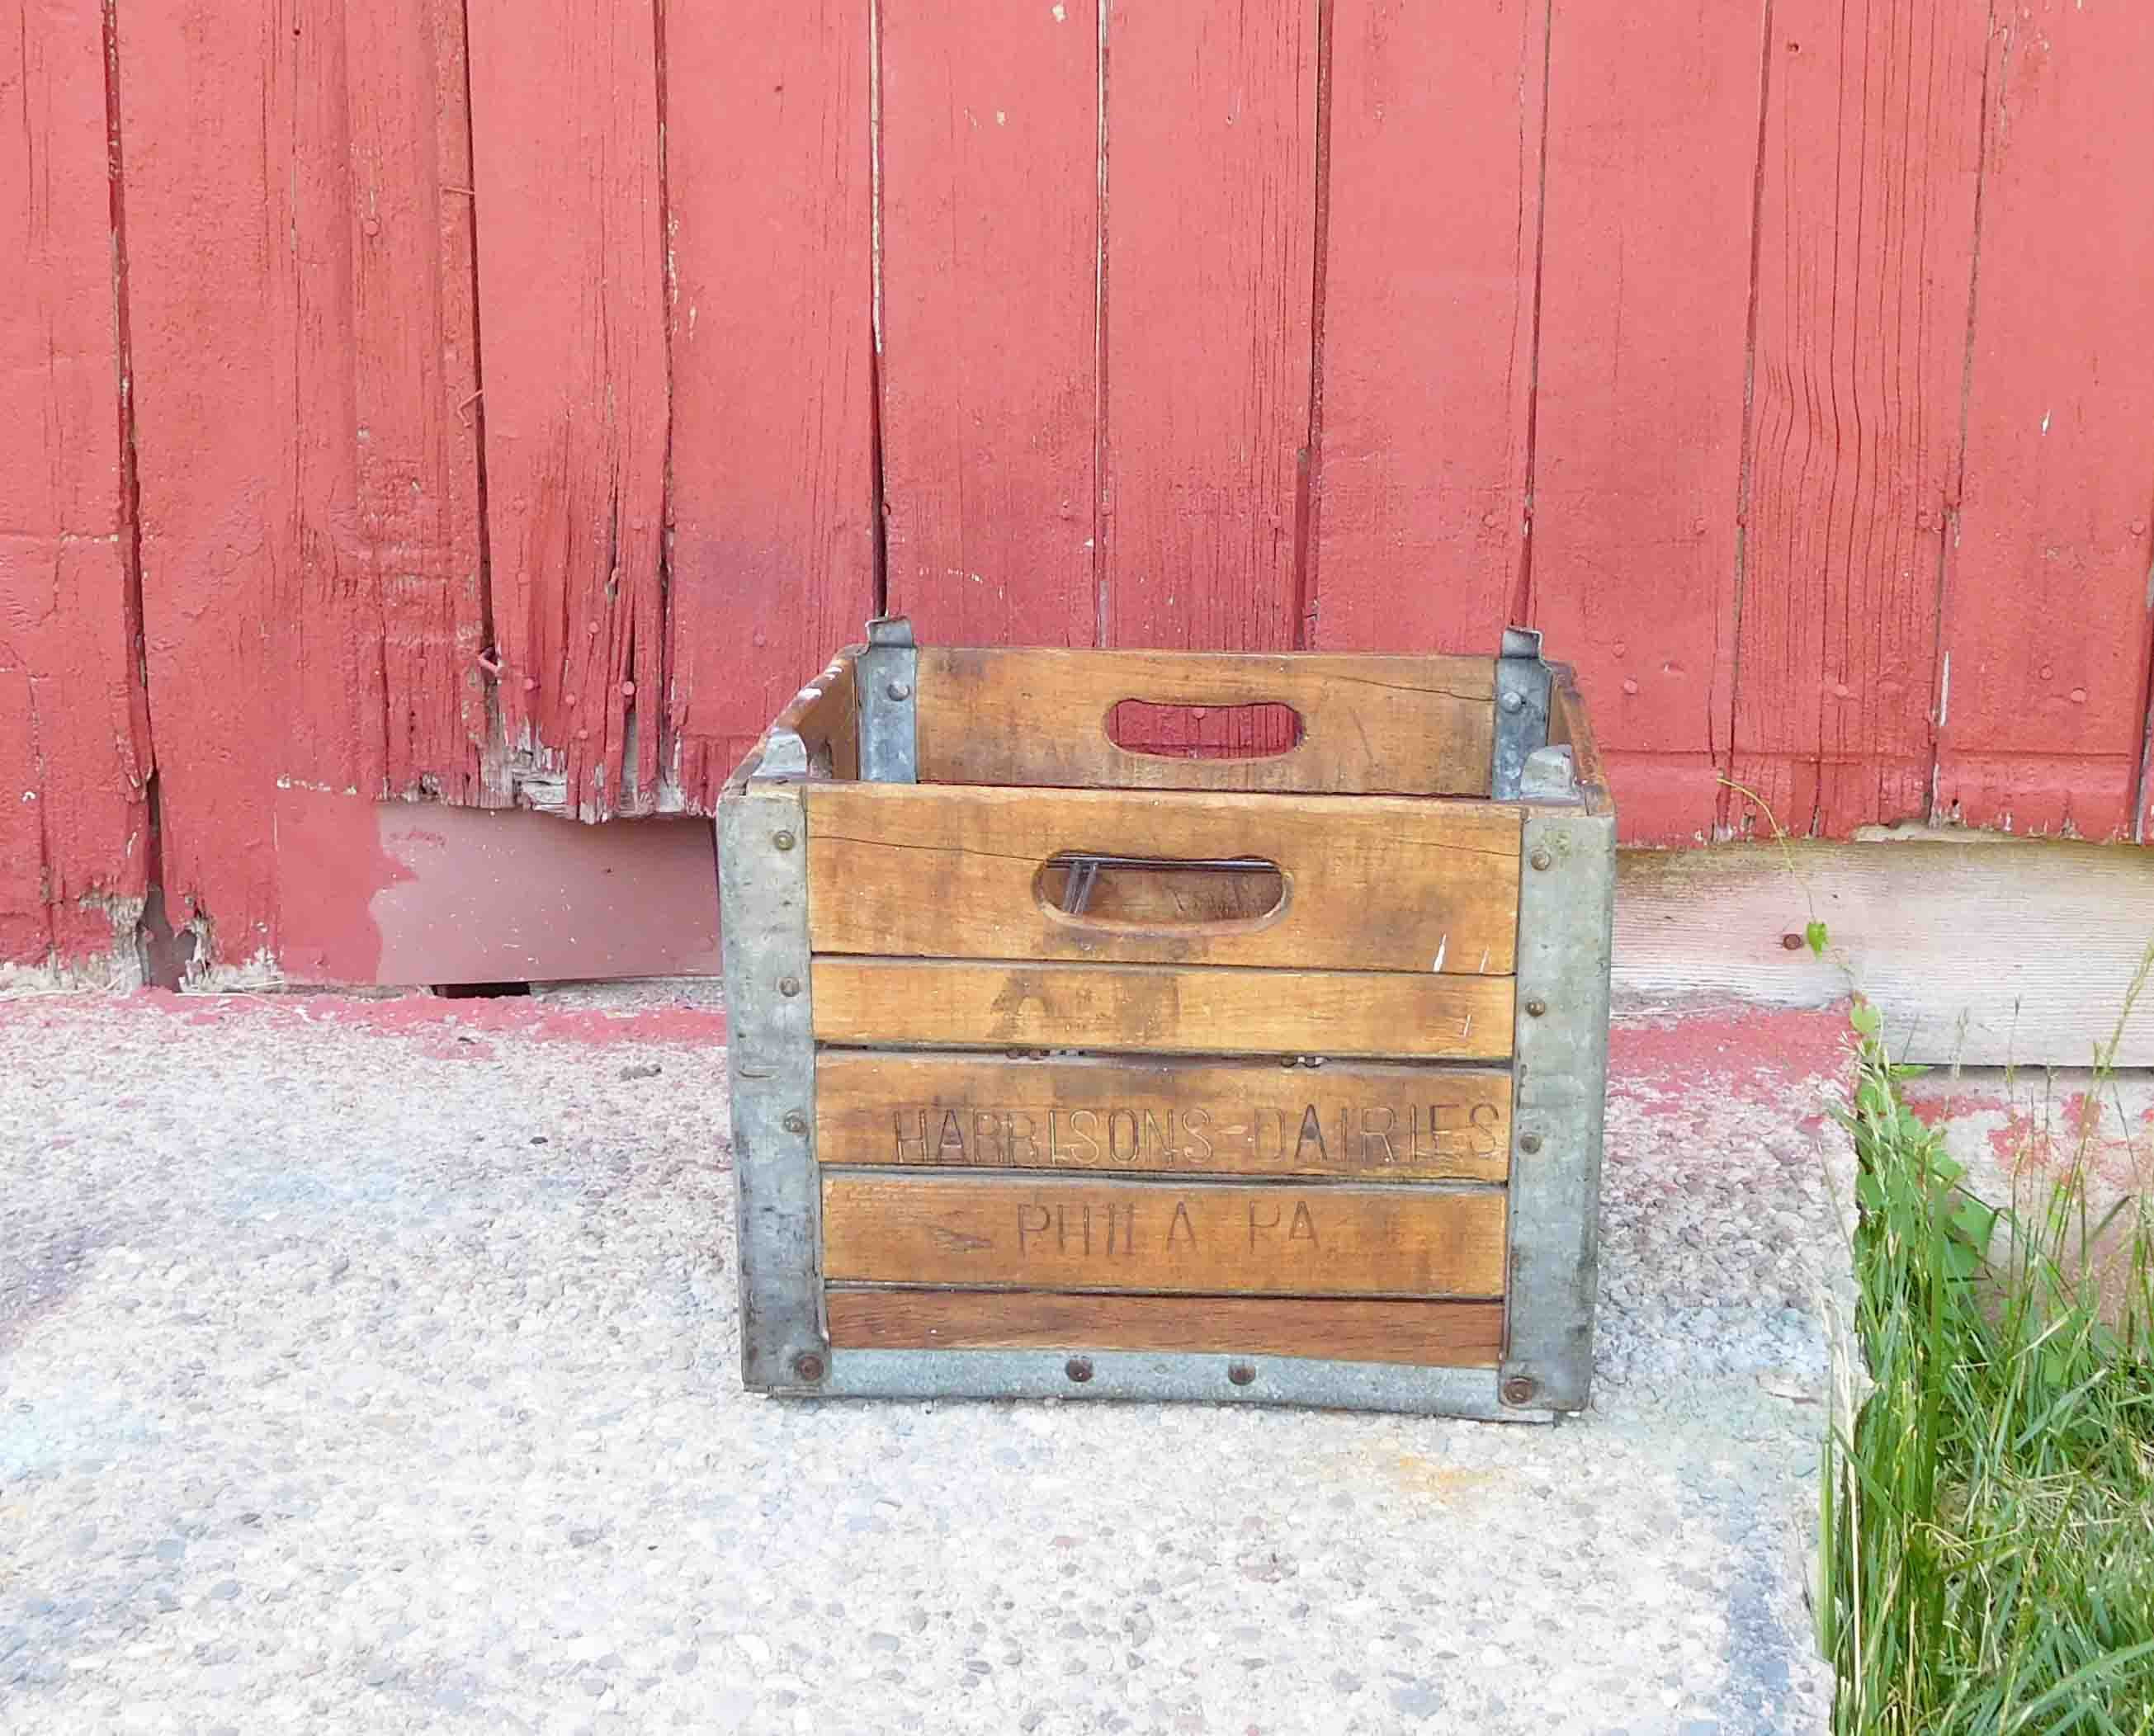 Vintage Wooden Milk Crate Harbisons Dairies Phila Pa With Metal Carrier All Original Primitive Milk Crates Wood Boxes Crates